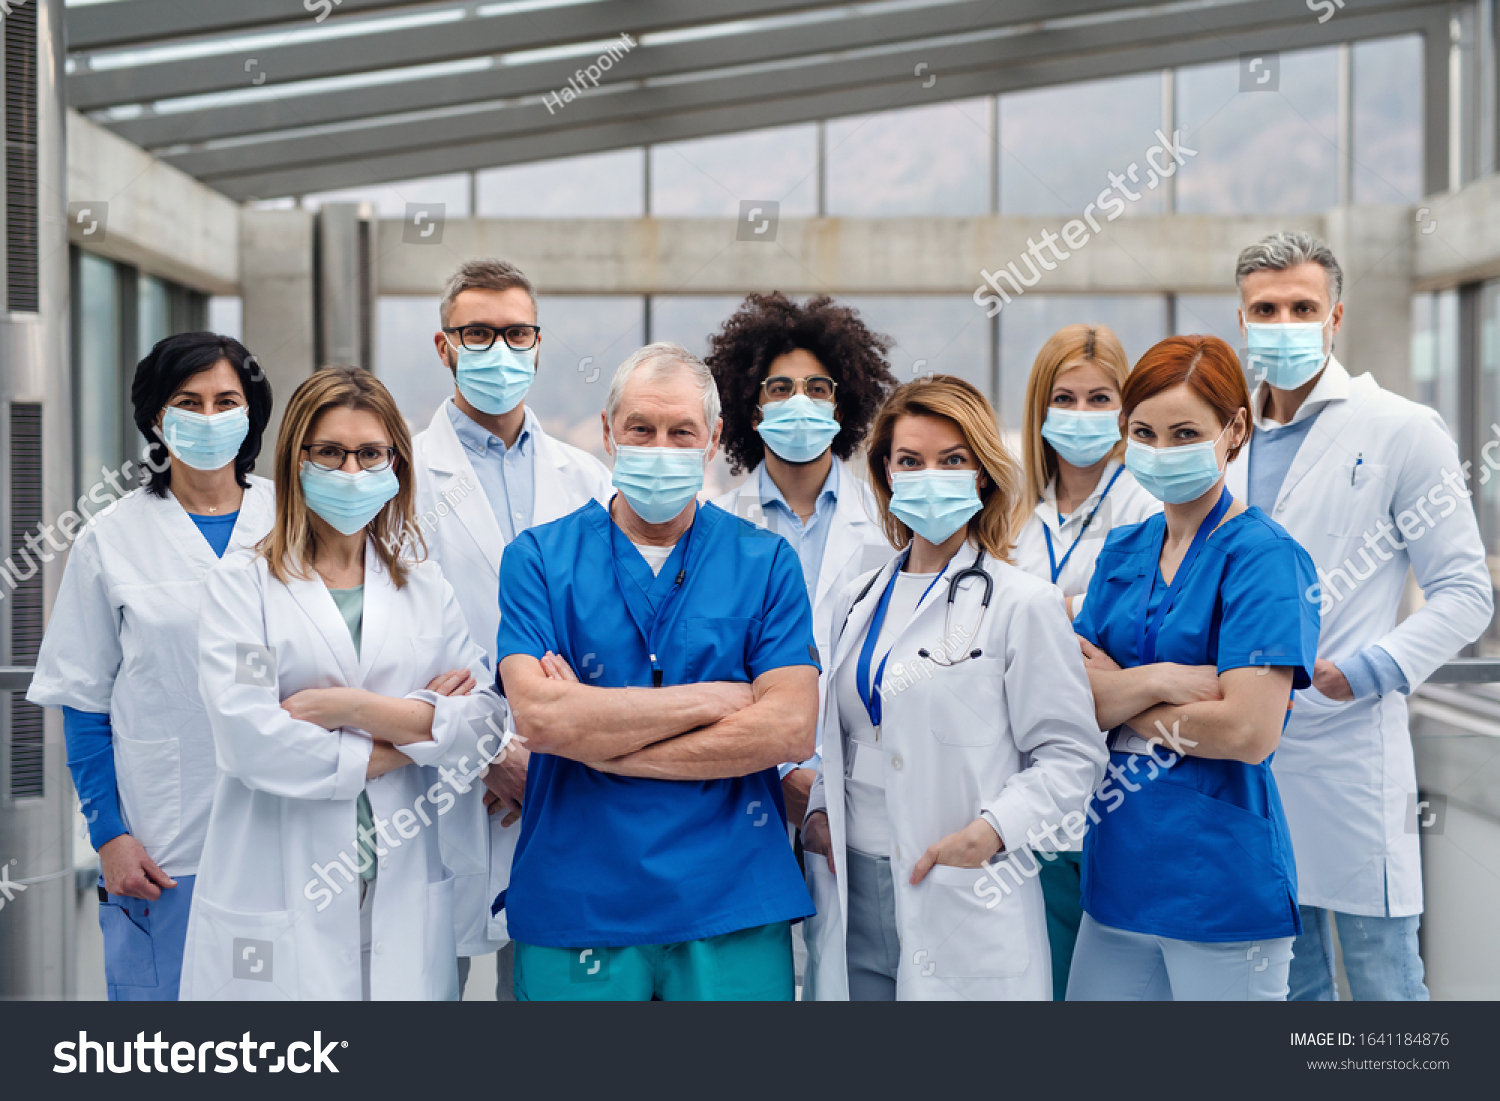 Group of doctors with face masks looking at camera, corona virus concept. #1641184876